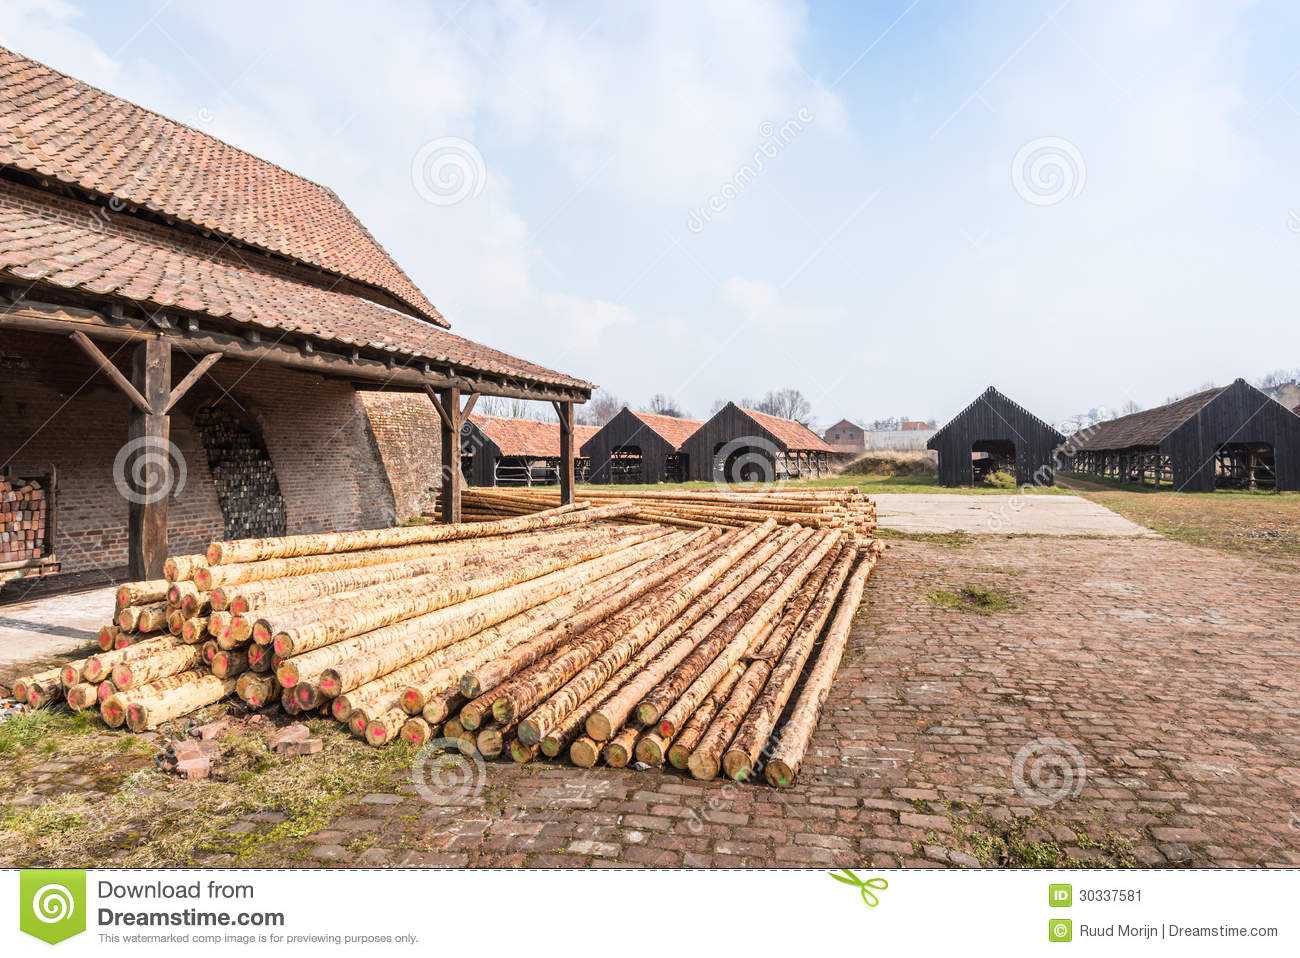 Wood Piling Construction : Piles of peeled pine wood for construction stock image